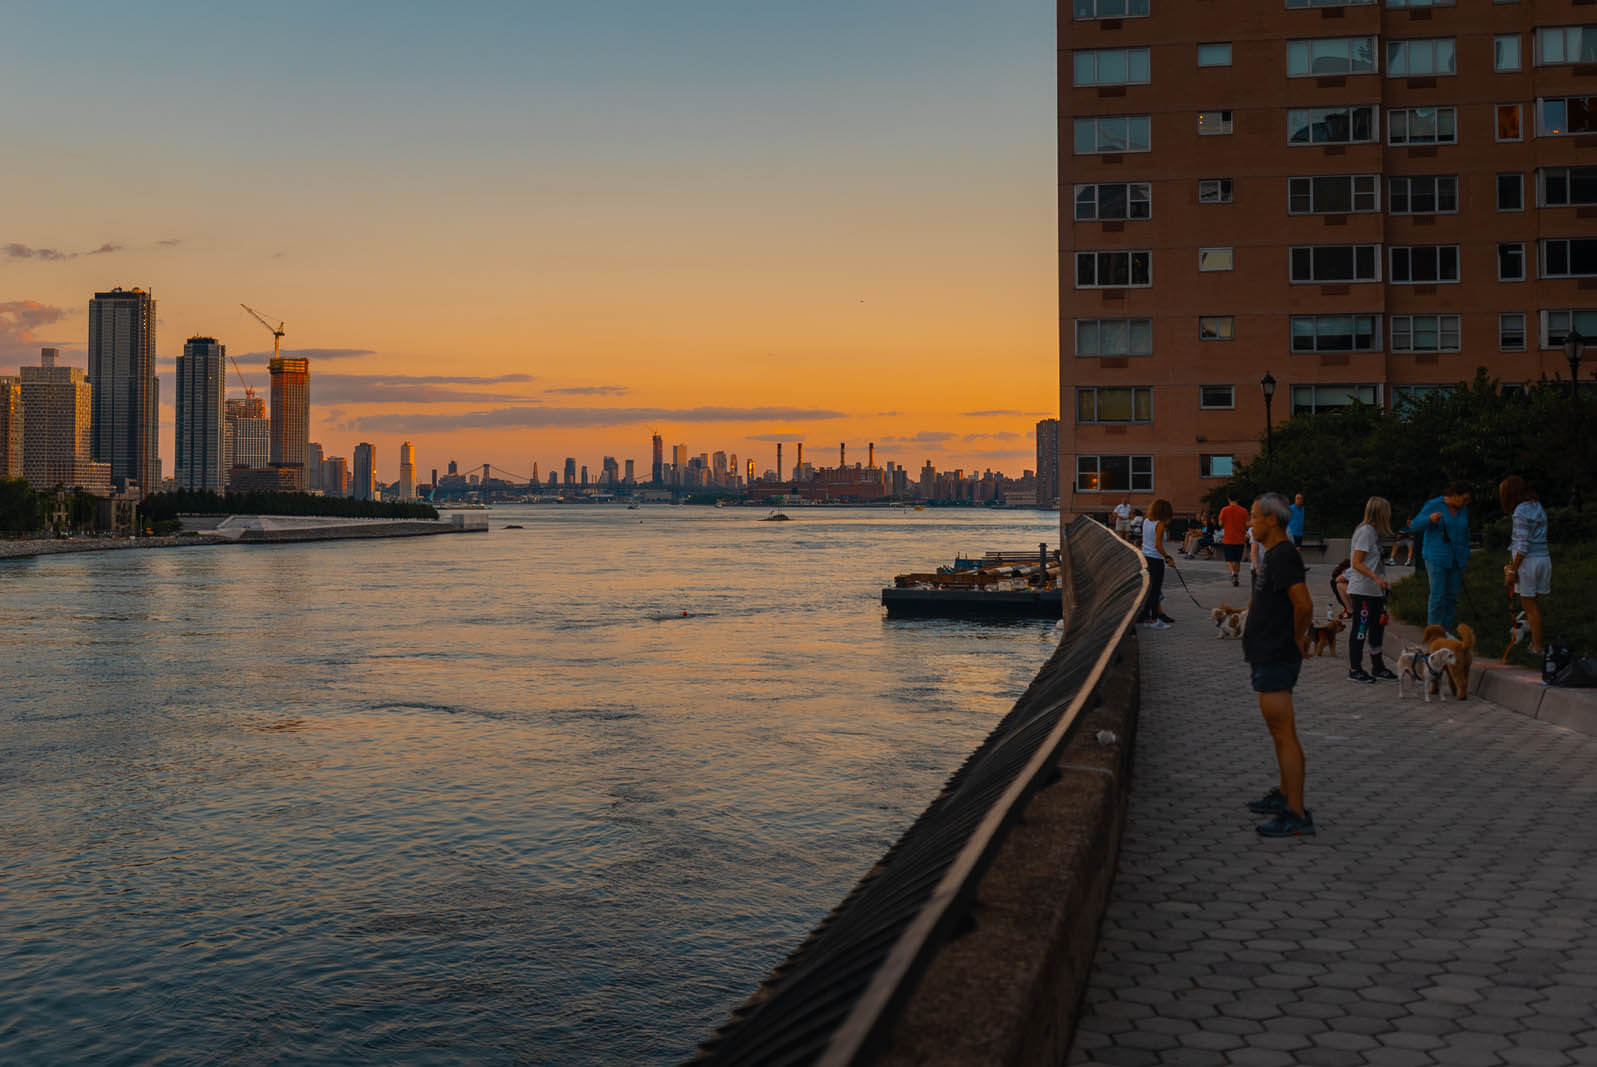 The waterfront East River view from Sutton Place Park in Manhattan